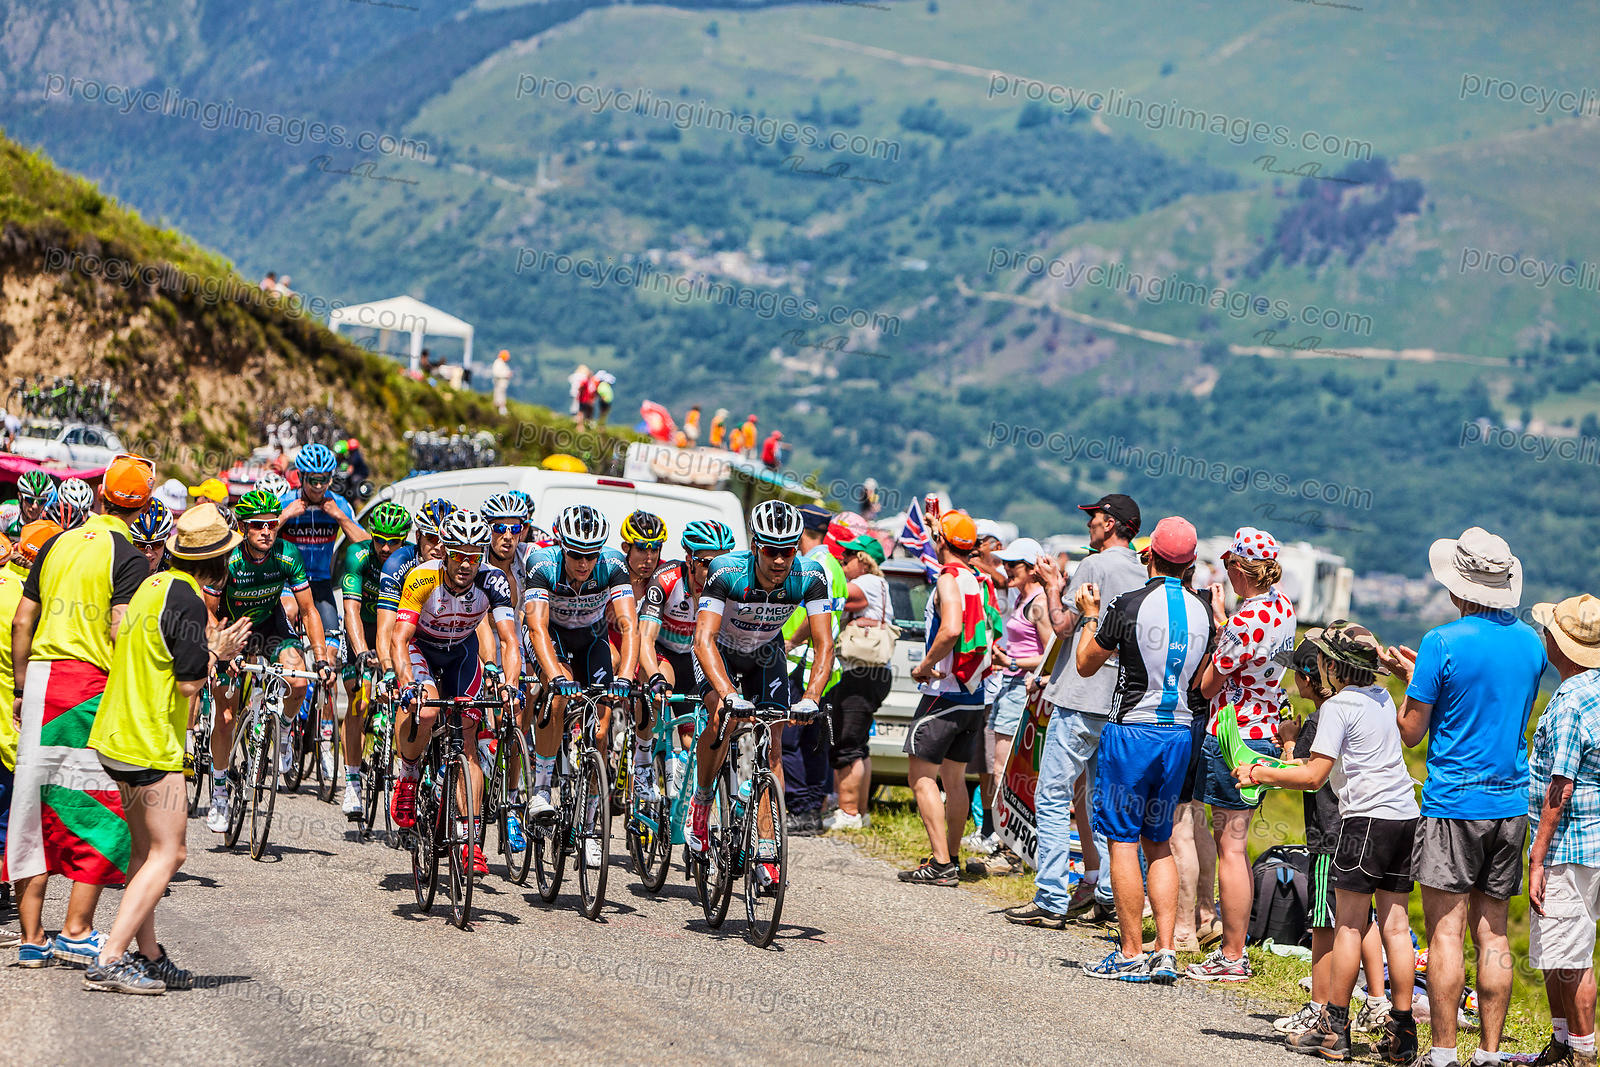 The Peloton in Pyrenees Mountains - Tour de France 2013